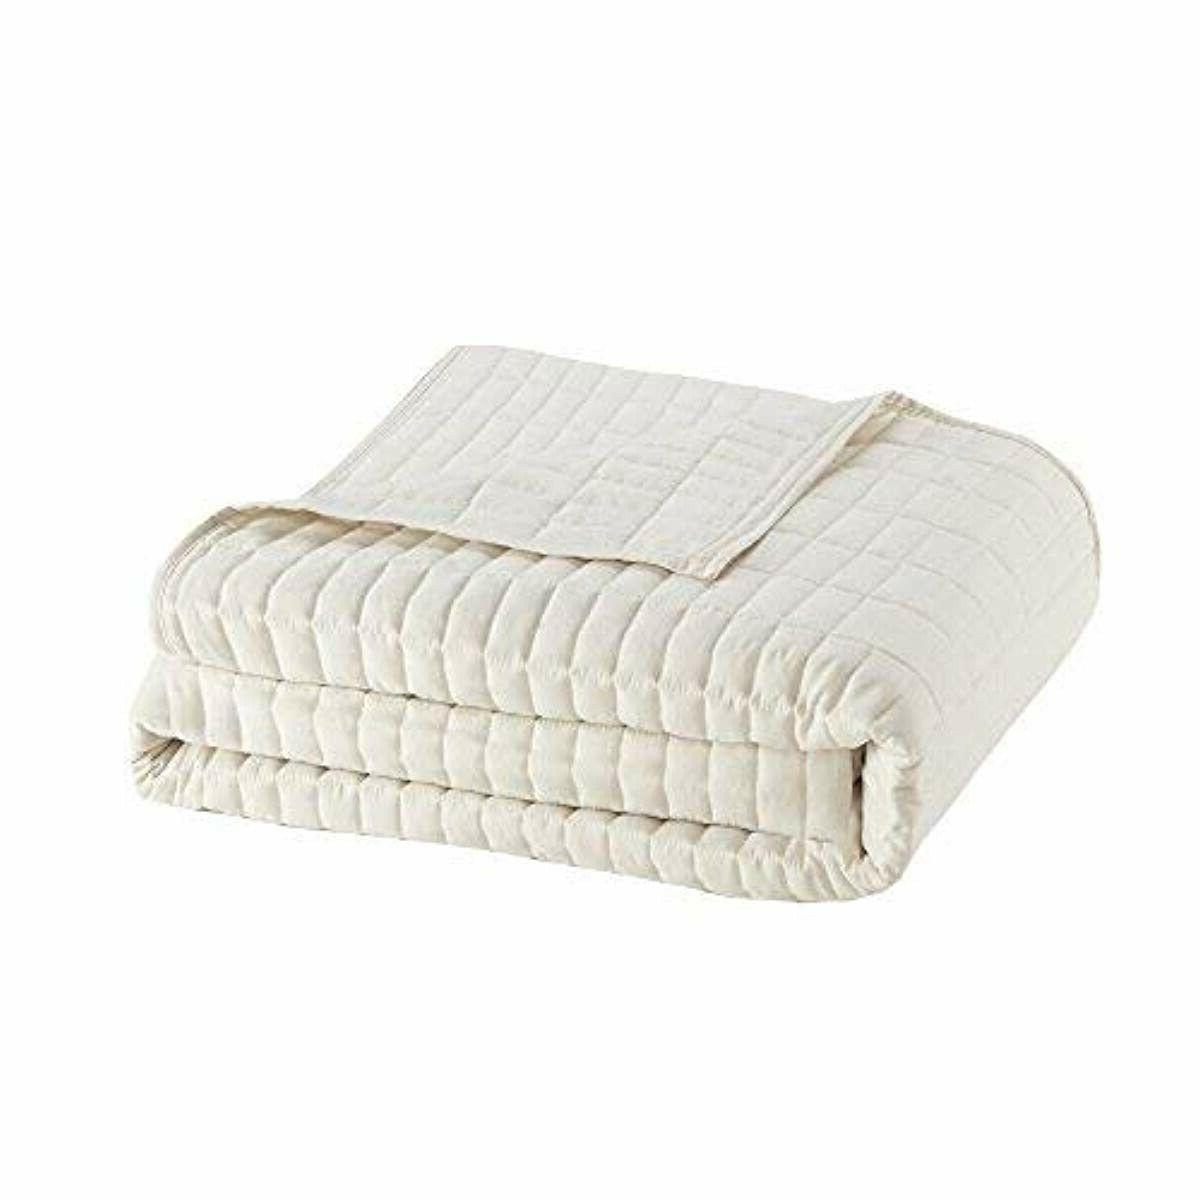 Comfort - Daybed Set - Quilt - Pieces Ivory -